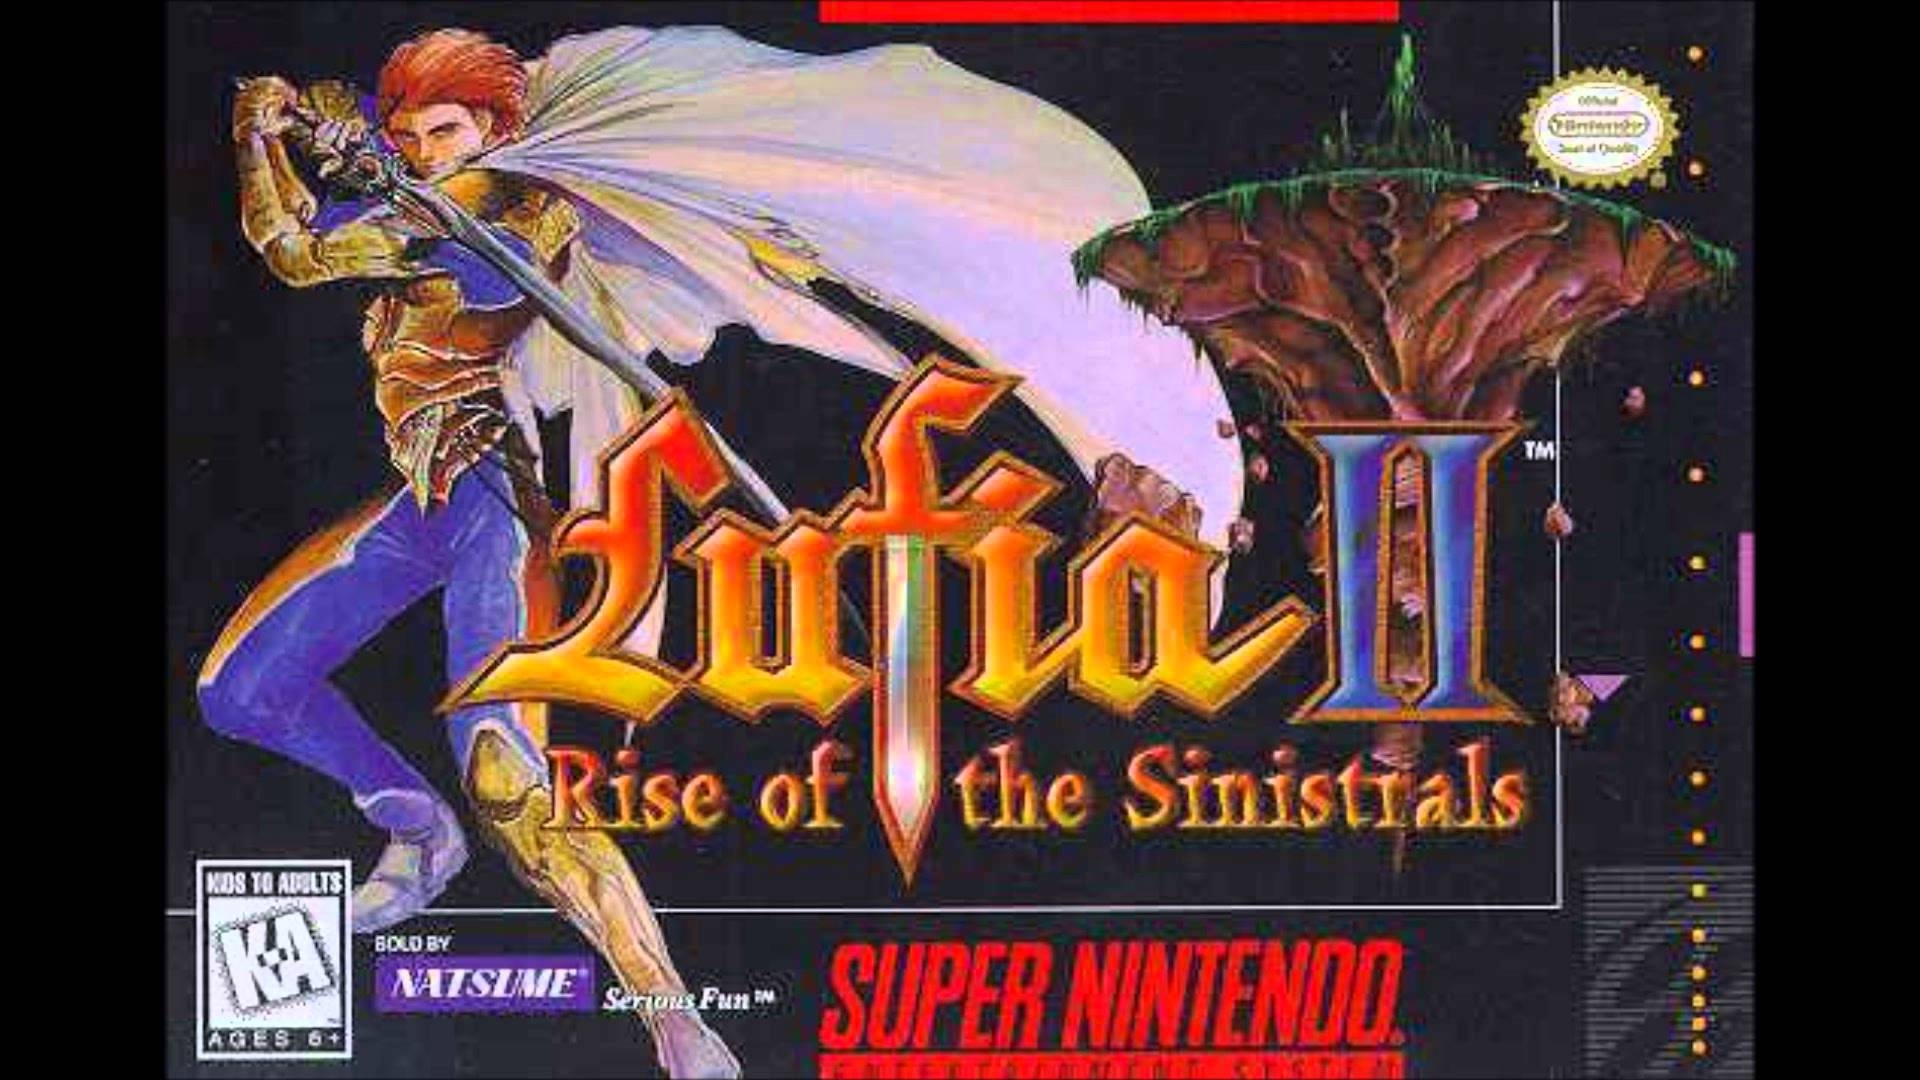 Lufia 2 Rise of the Sinistrals Review | Lufia II Rise of the Sinistrals Review | Lufia II Review | Lufia 2 Review | Lufia 2 SNES | Lufia II SNES | Lufia 2 SNES Review | Lufia II SNES Review | Lufia II Rise of the Sinistrals SNES Review | Lufia 2 Rise of the Sinistrals SNES Review | Lufia II Retro SNES Game Review | Retro Game Reviews | Lufia | SNES | Game Reviews